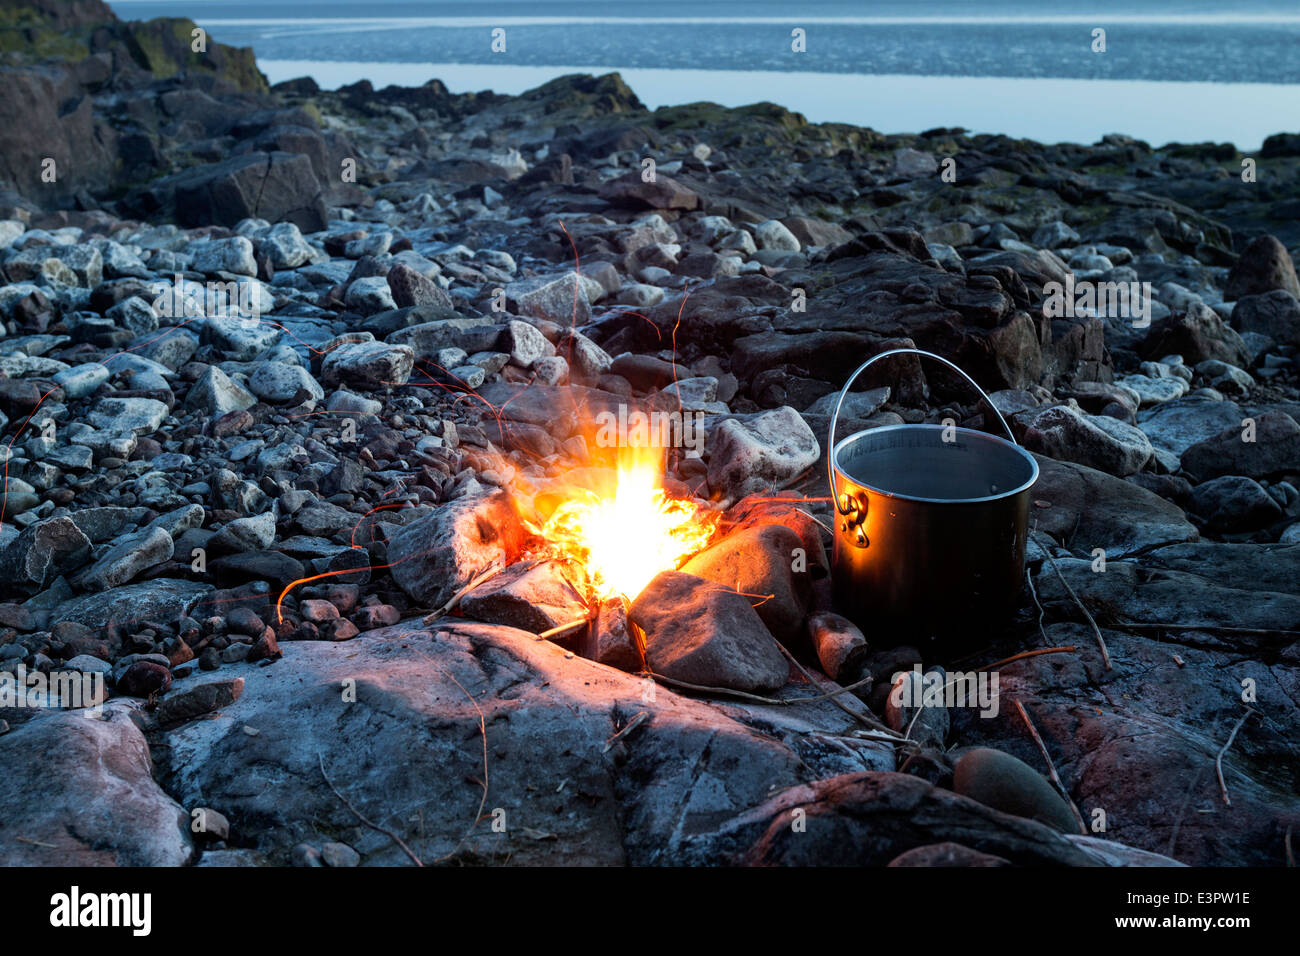 Fire with Cooking Pot on a Rocky Beach at Dusk England UK - Stock Image